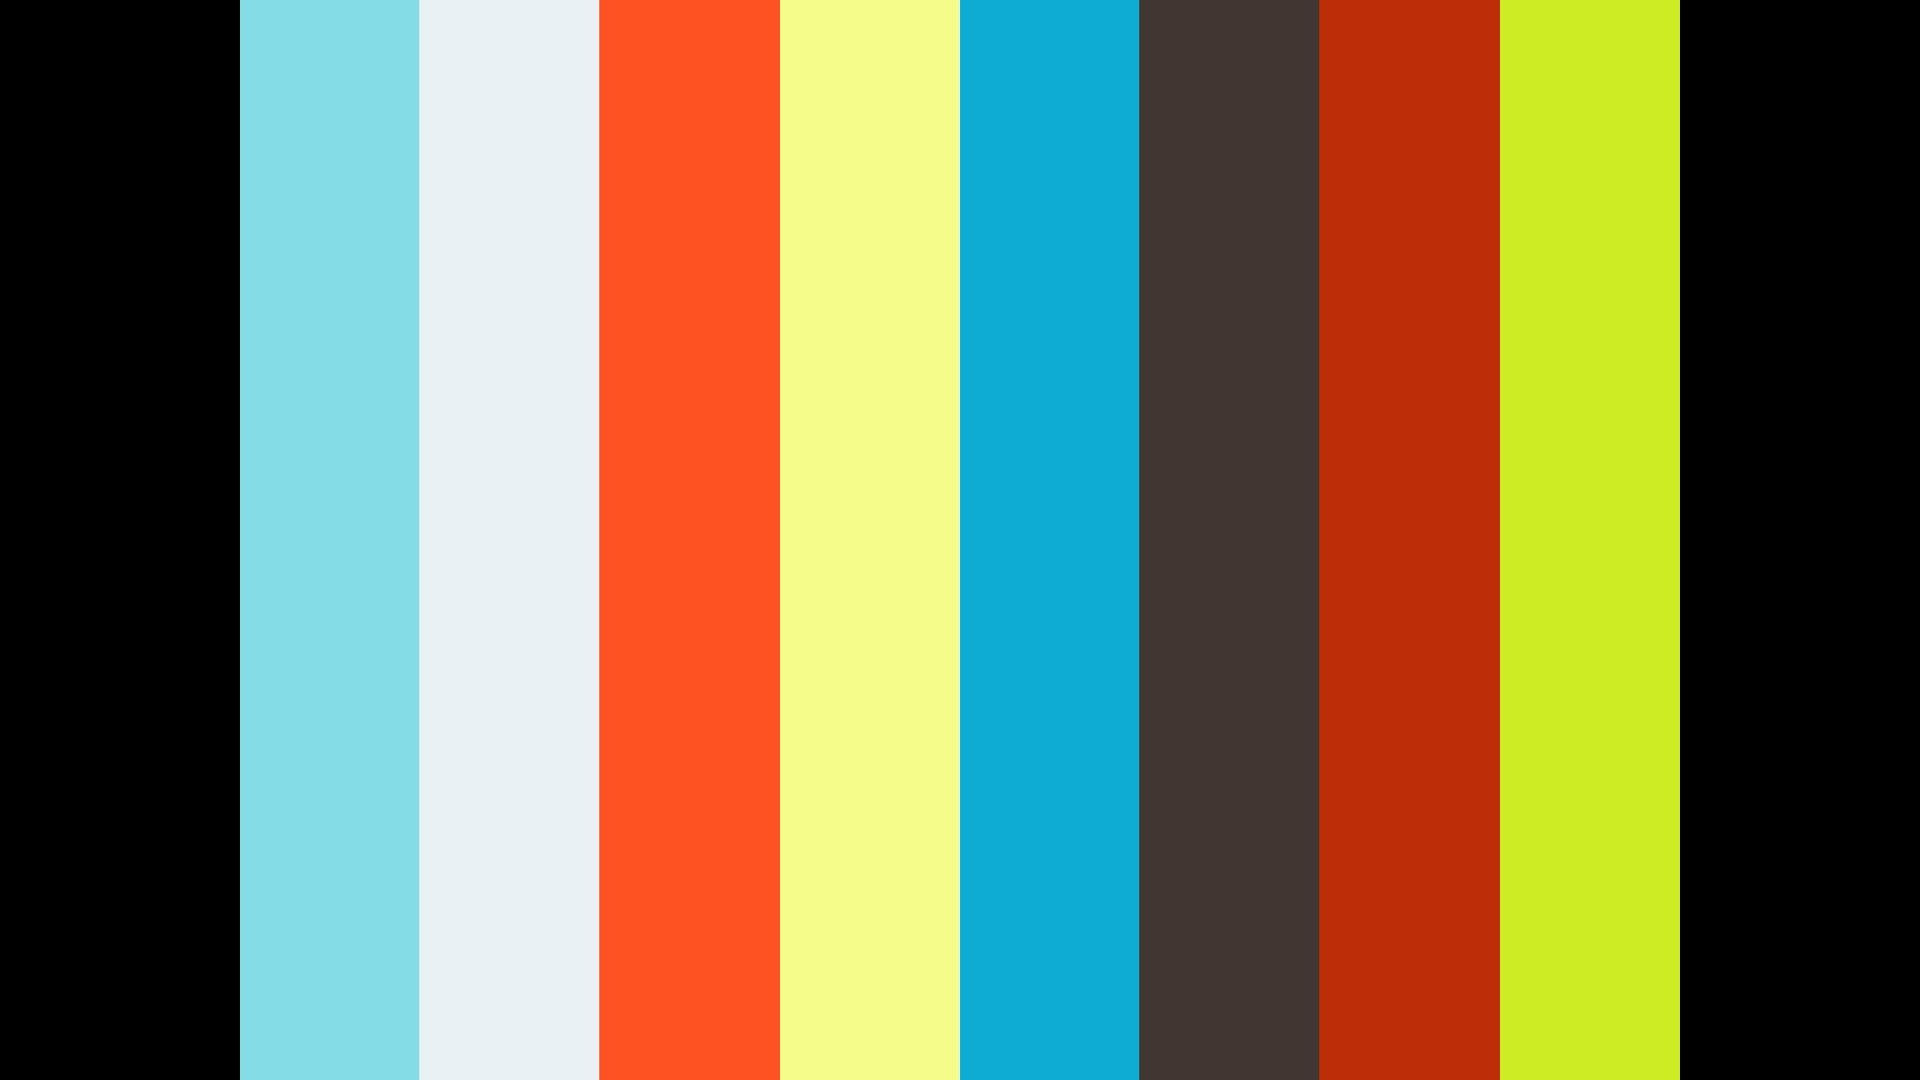 Coping with COVID19 -- Terms of Grief in the News Explained